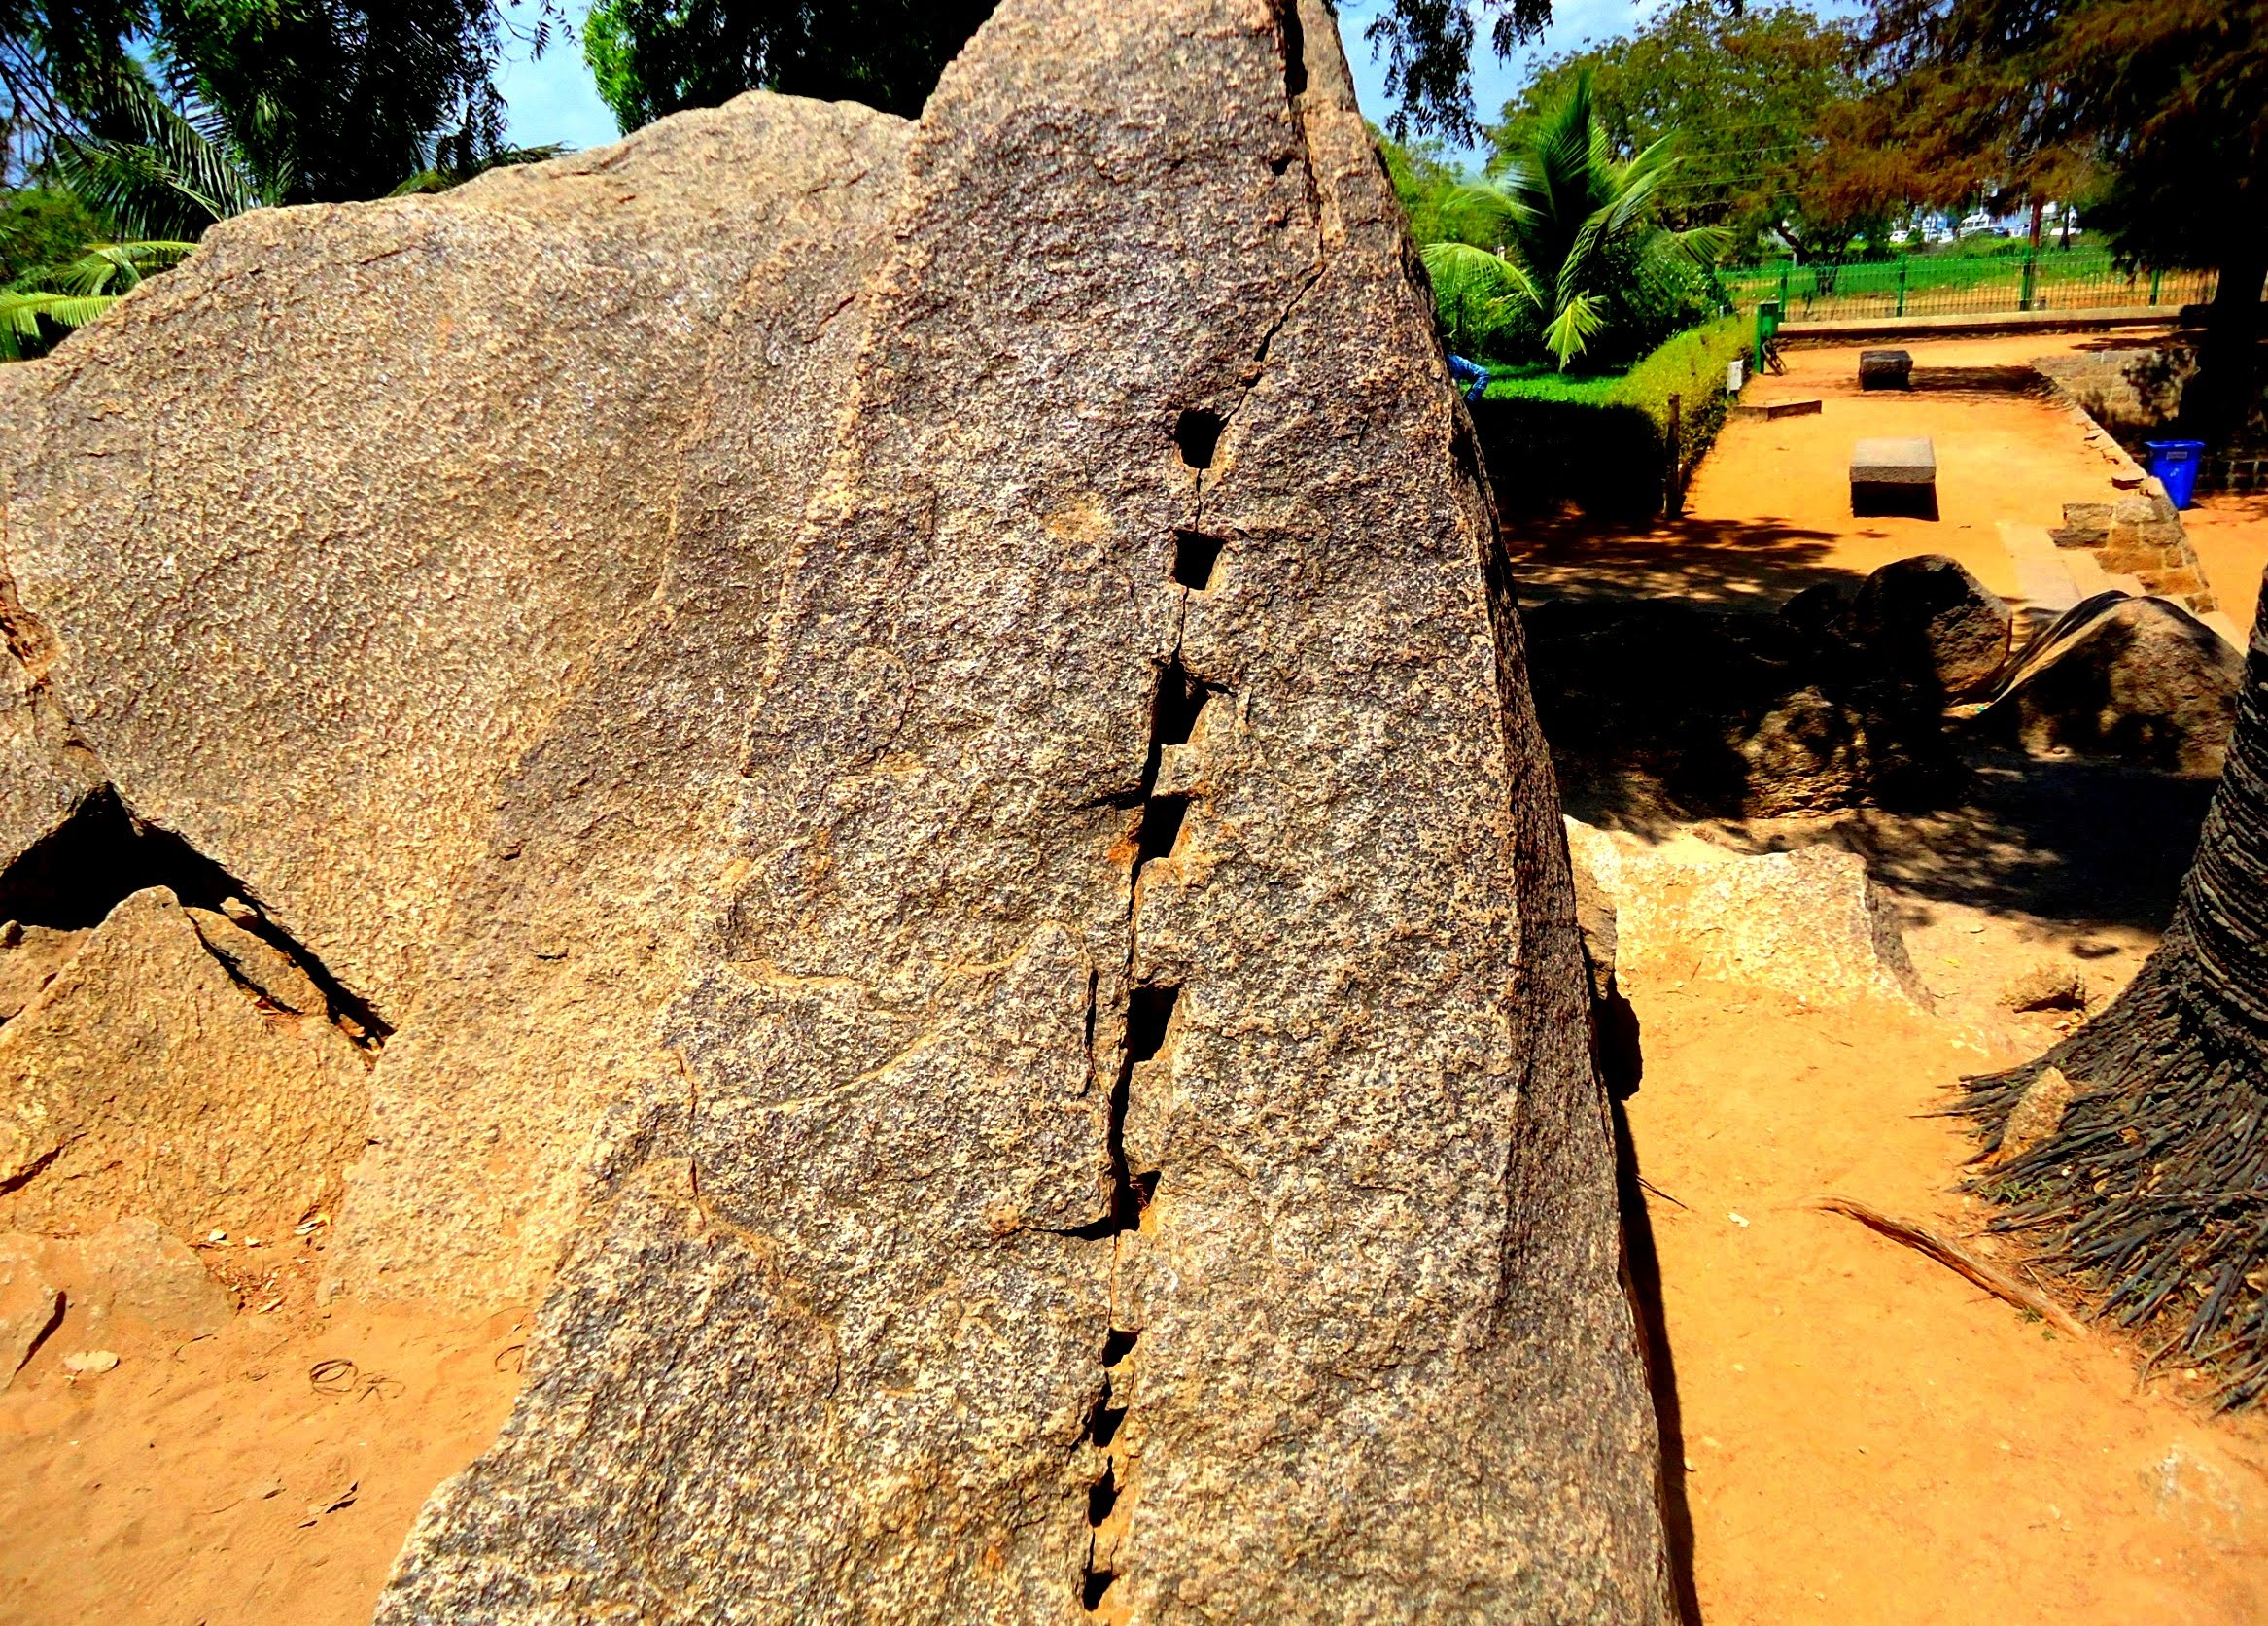 Ancient Mysteries - 1400 Year Old Advanced Ancient Drilling Technology